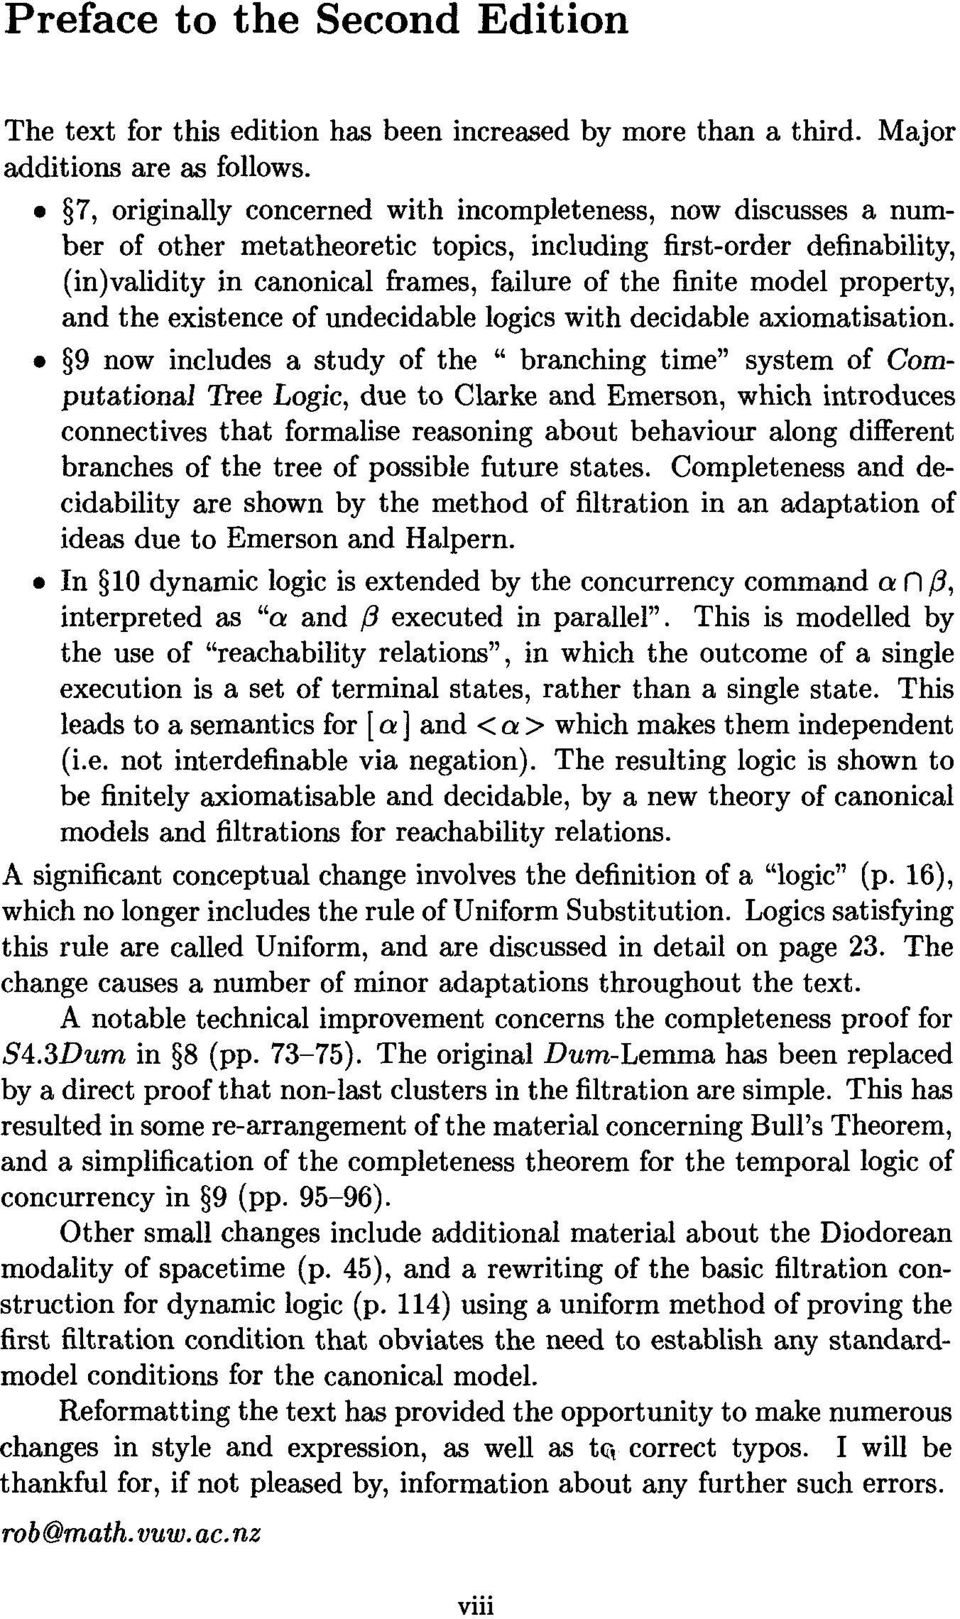 property, and the existence of undecidable logics with decidable axiomatisation.